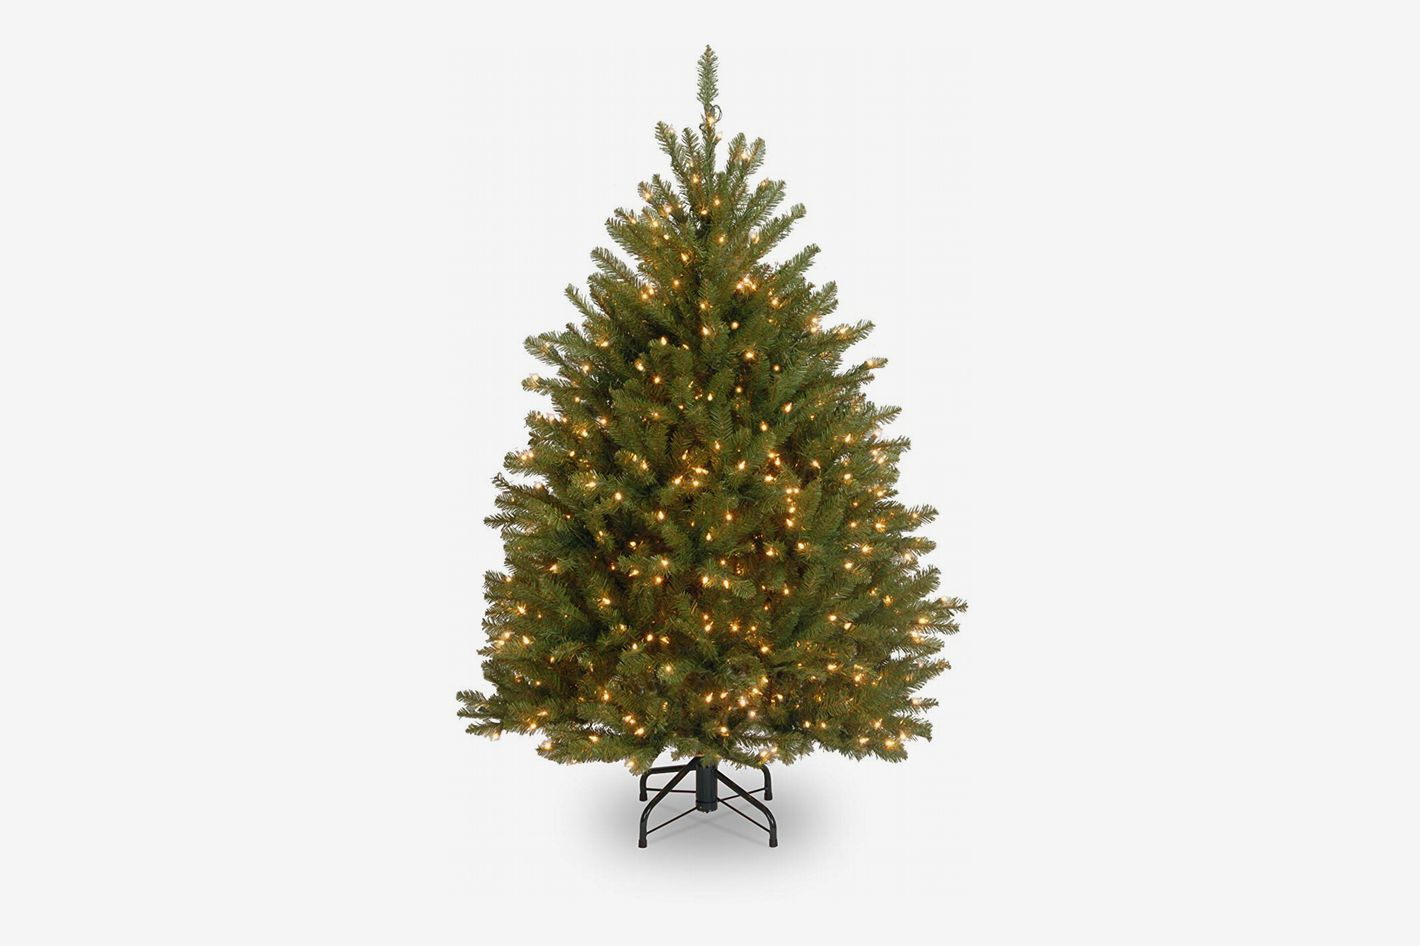 national tree 4 12 foot dunhill fir tree with 450 clear lights at amazon - Amazon Christmas Decorations Indoor